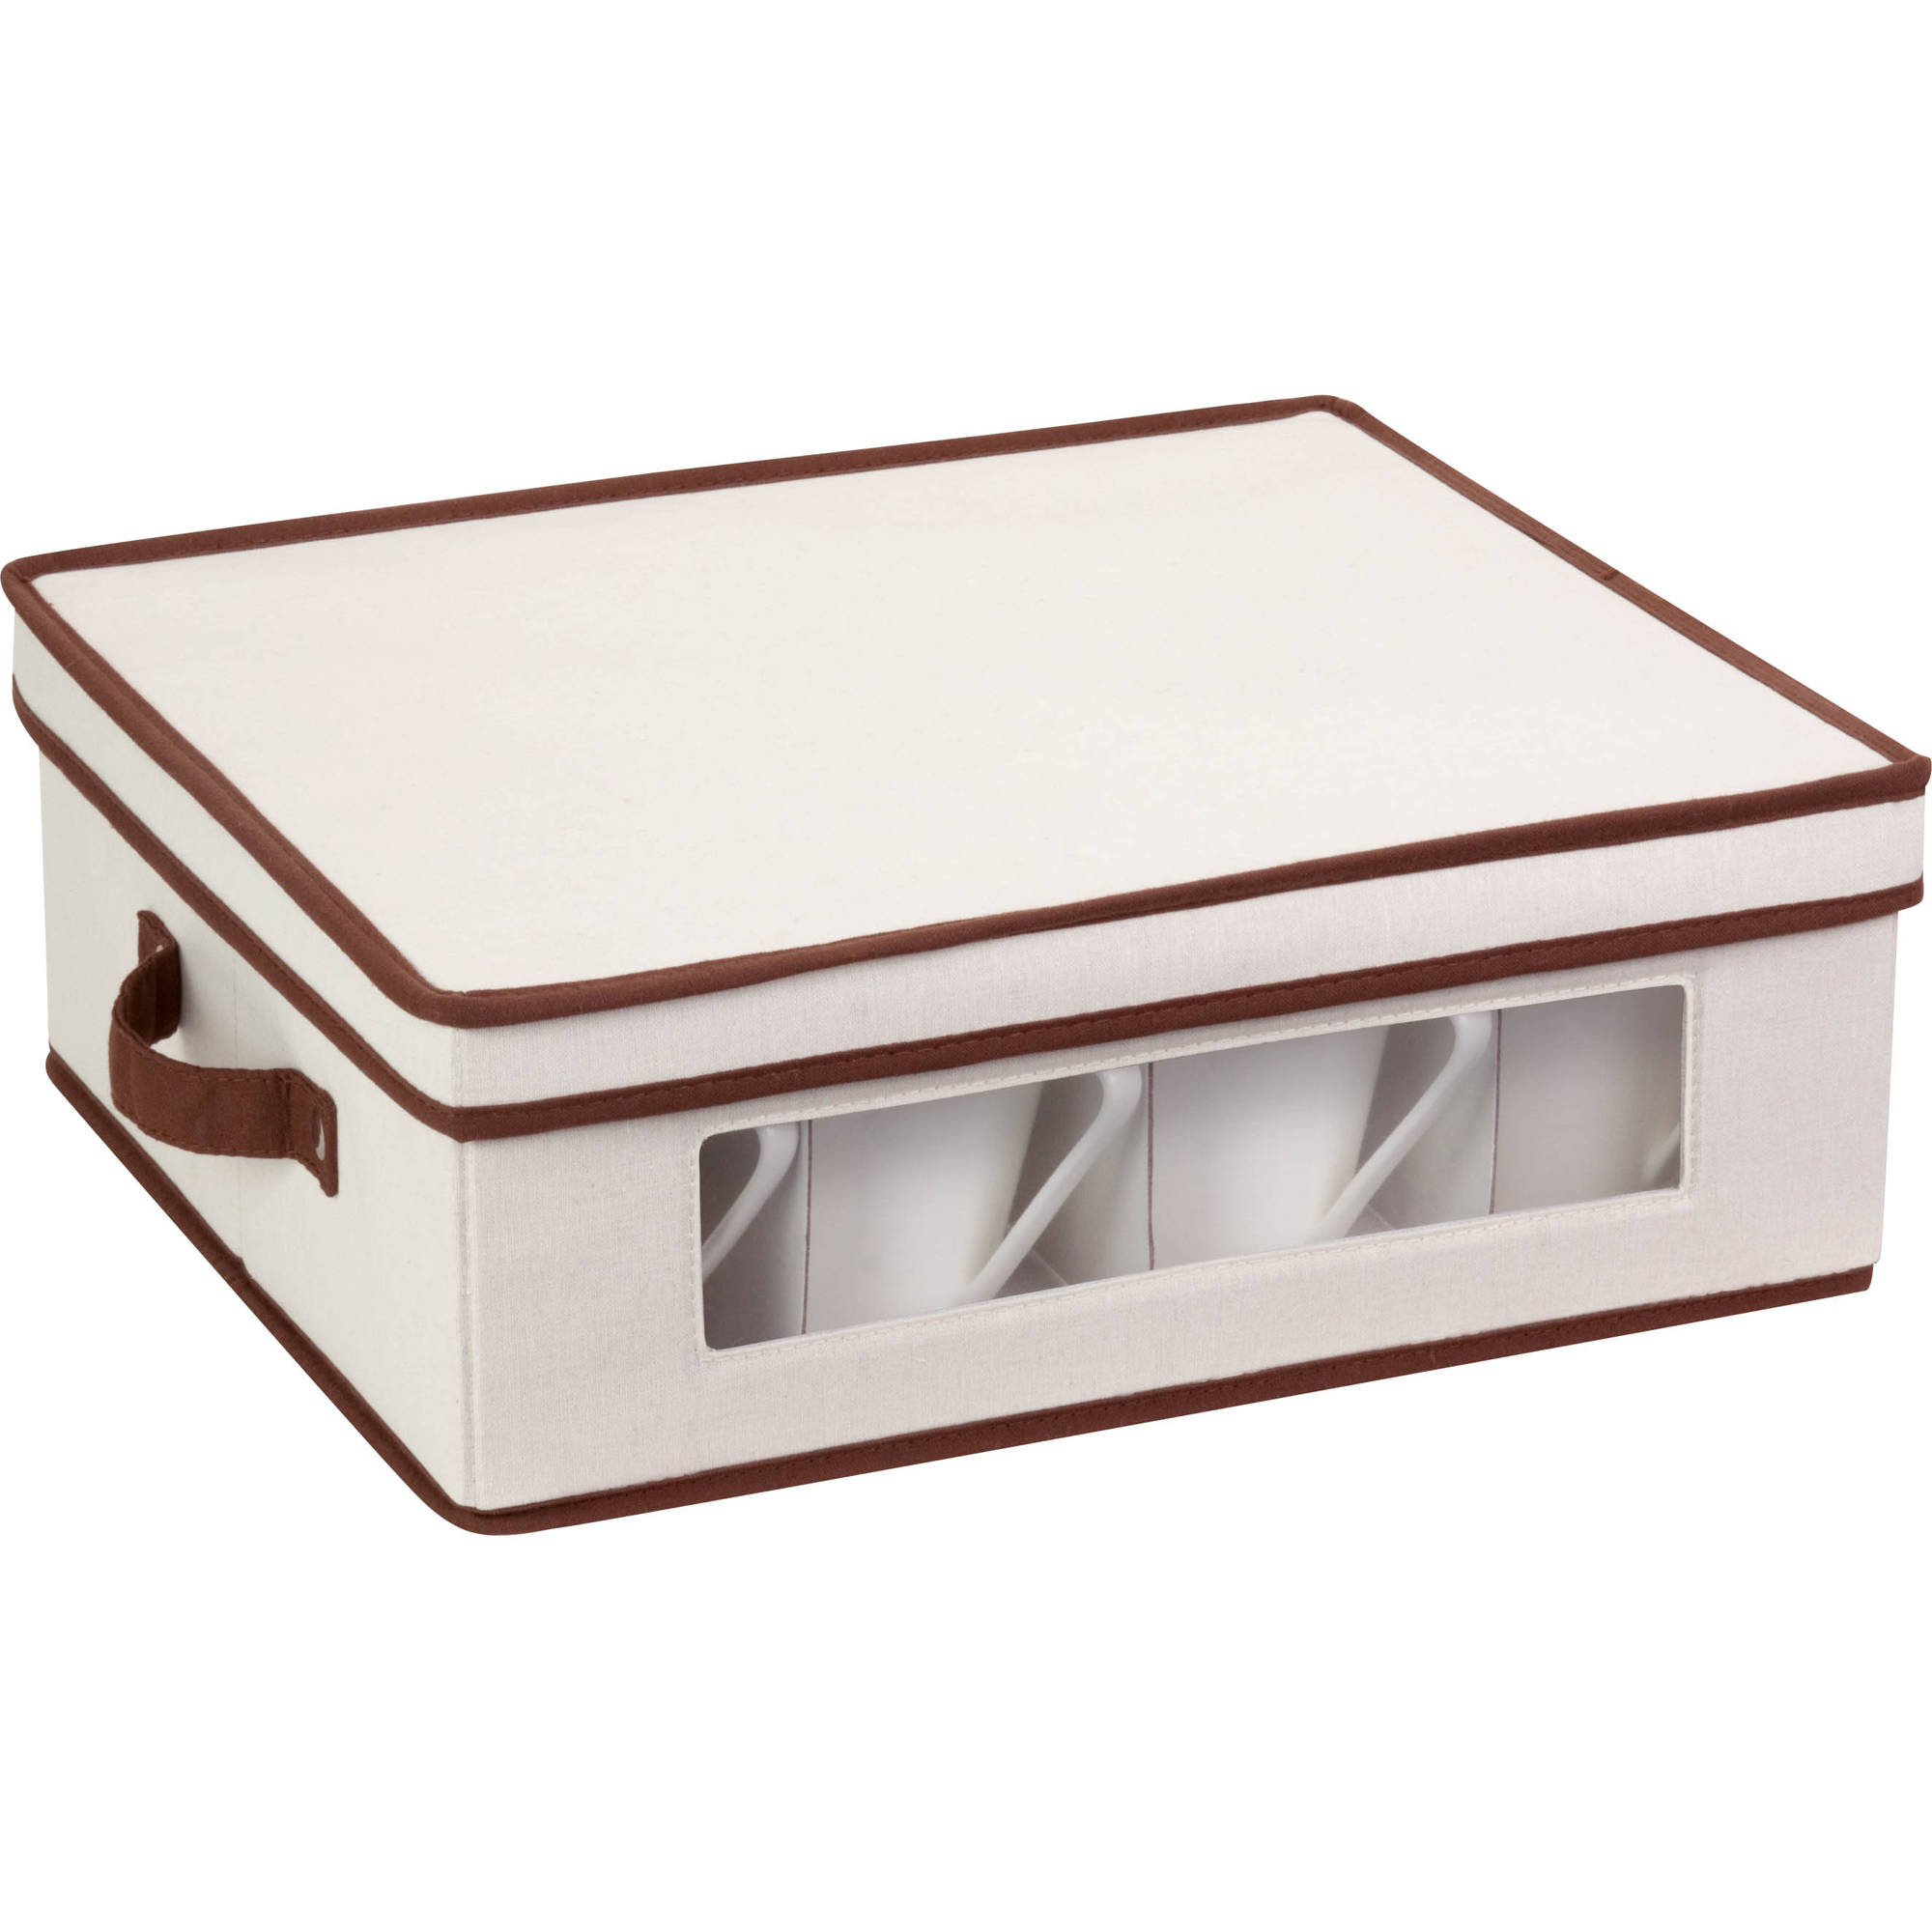 Charmant Honey Can Do Large 25lb Capacity Canvas Window Storage Box, Beige/Brown